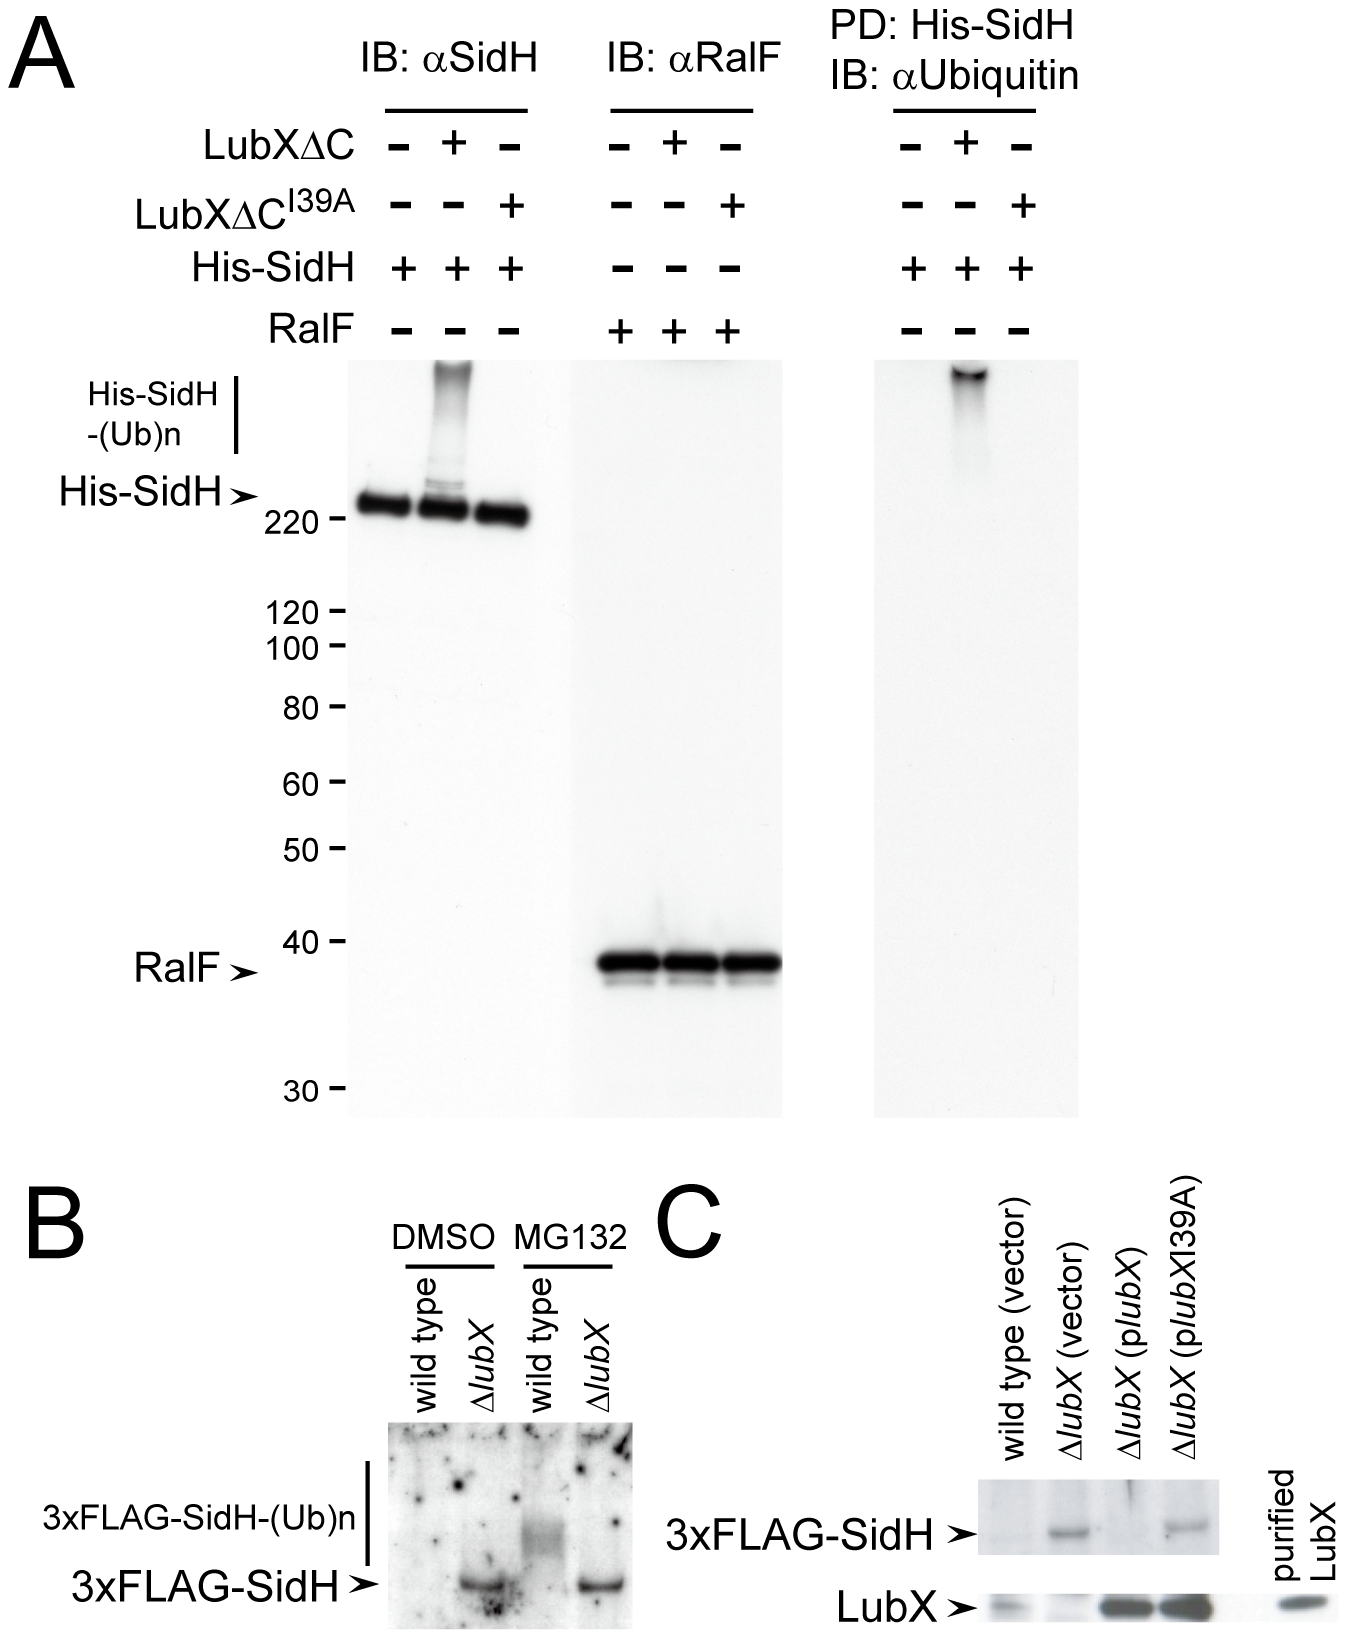 LubX promotes ubiquitination of SidH <i>in vitro</i> and within host cell.